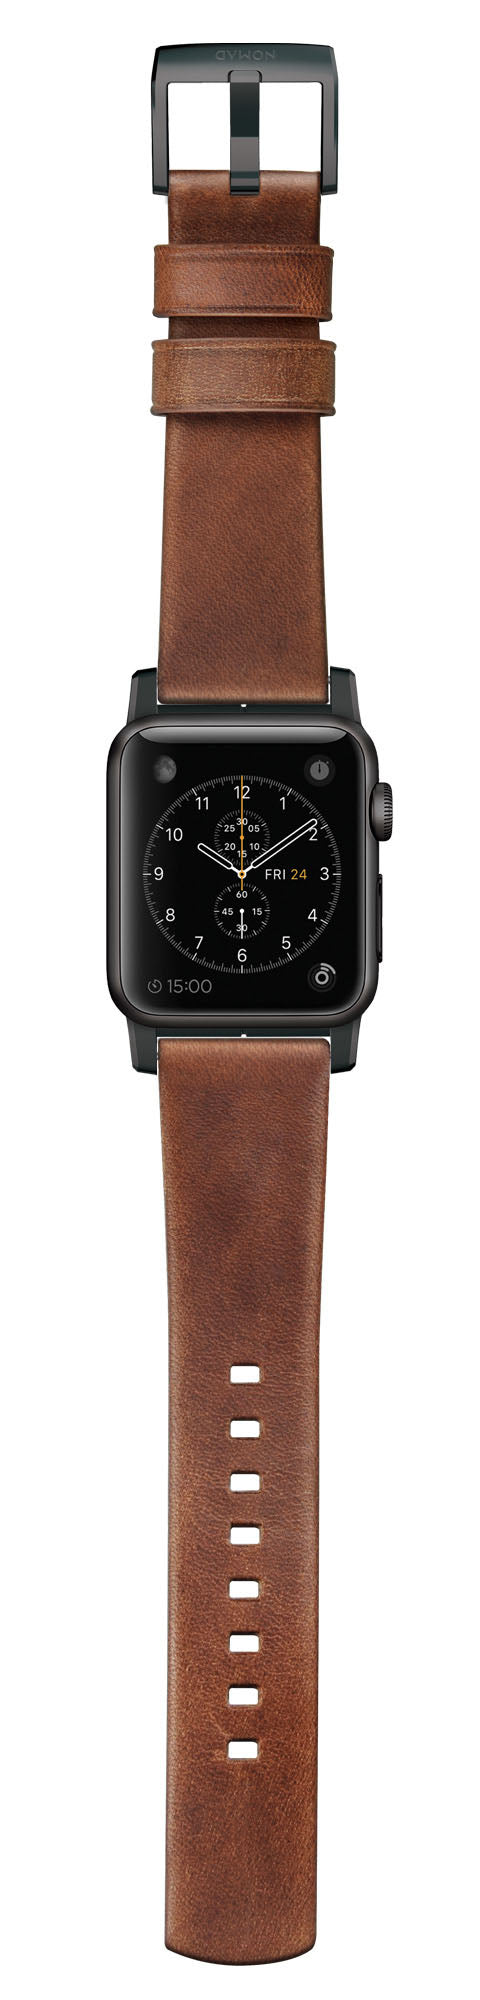 Leather Strap (Modern) Apple Watch 42mm Brown - Unwired Solutions Inc